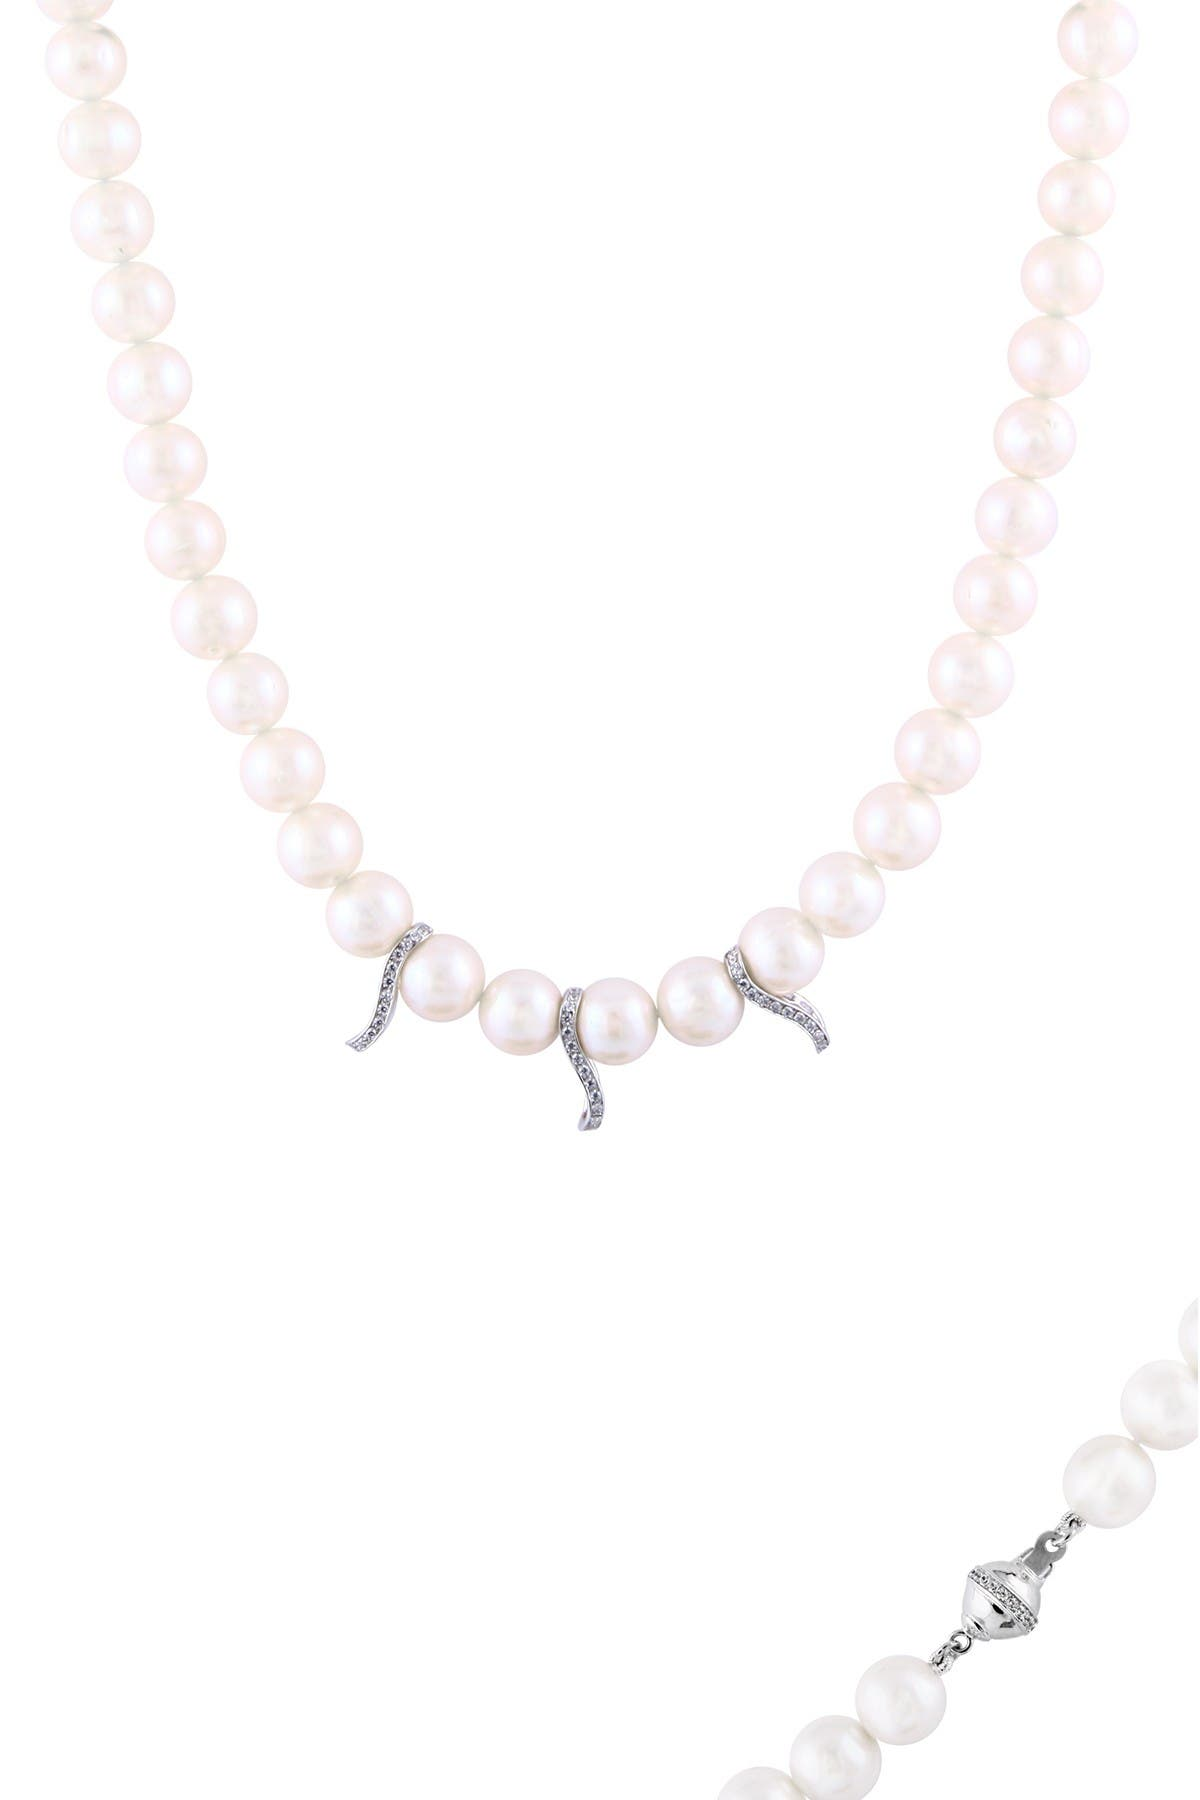 Image of Splendid Pearls Sterling Silver Pave CZ 10-11mm Freshwater Pearl Triple Divider Necklace